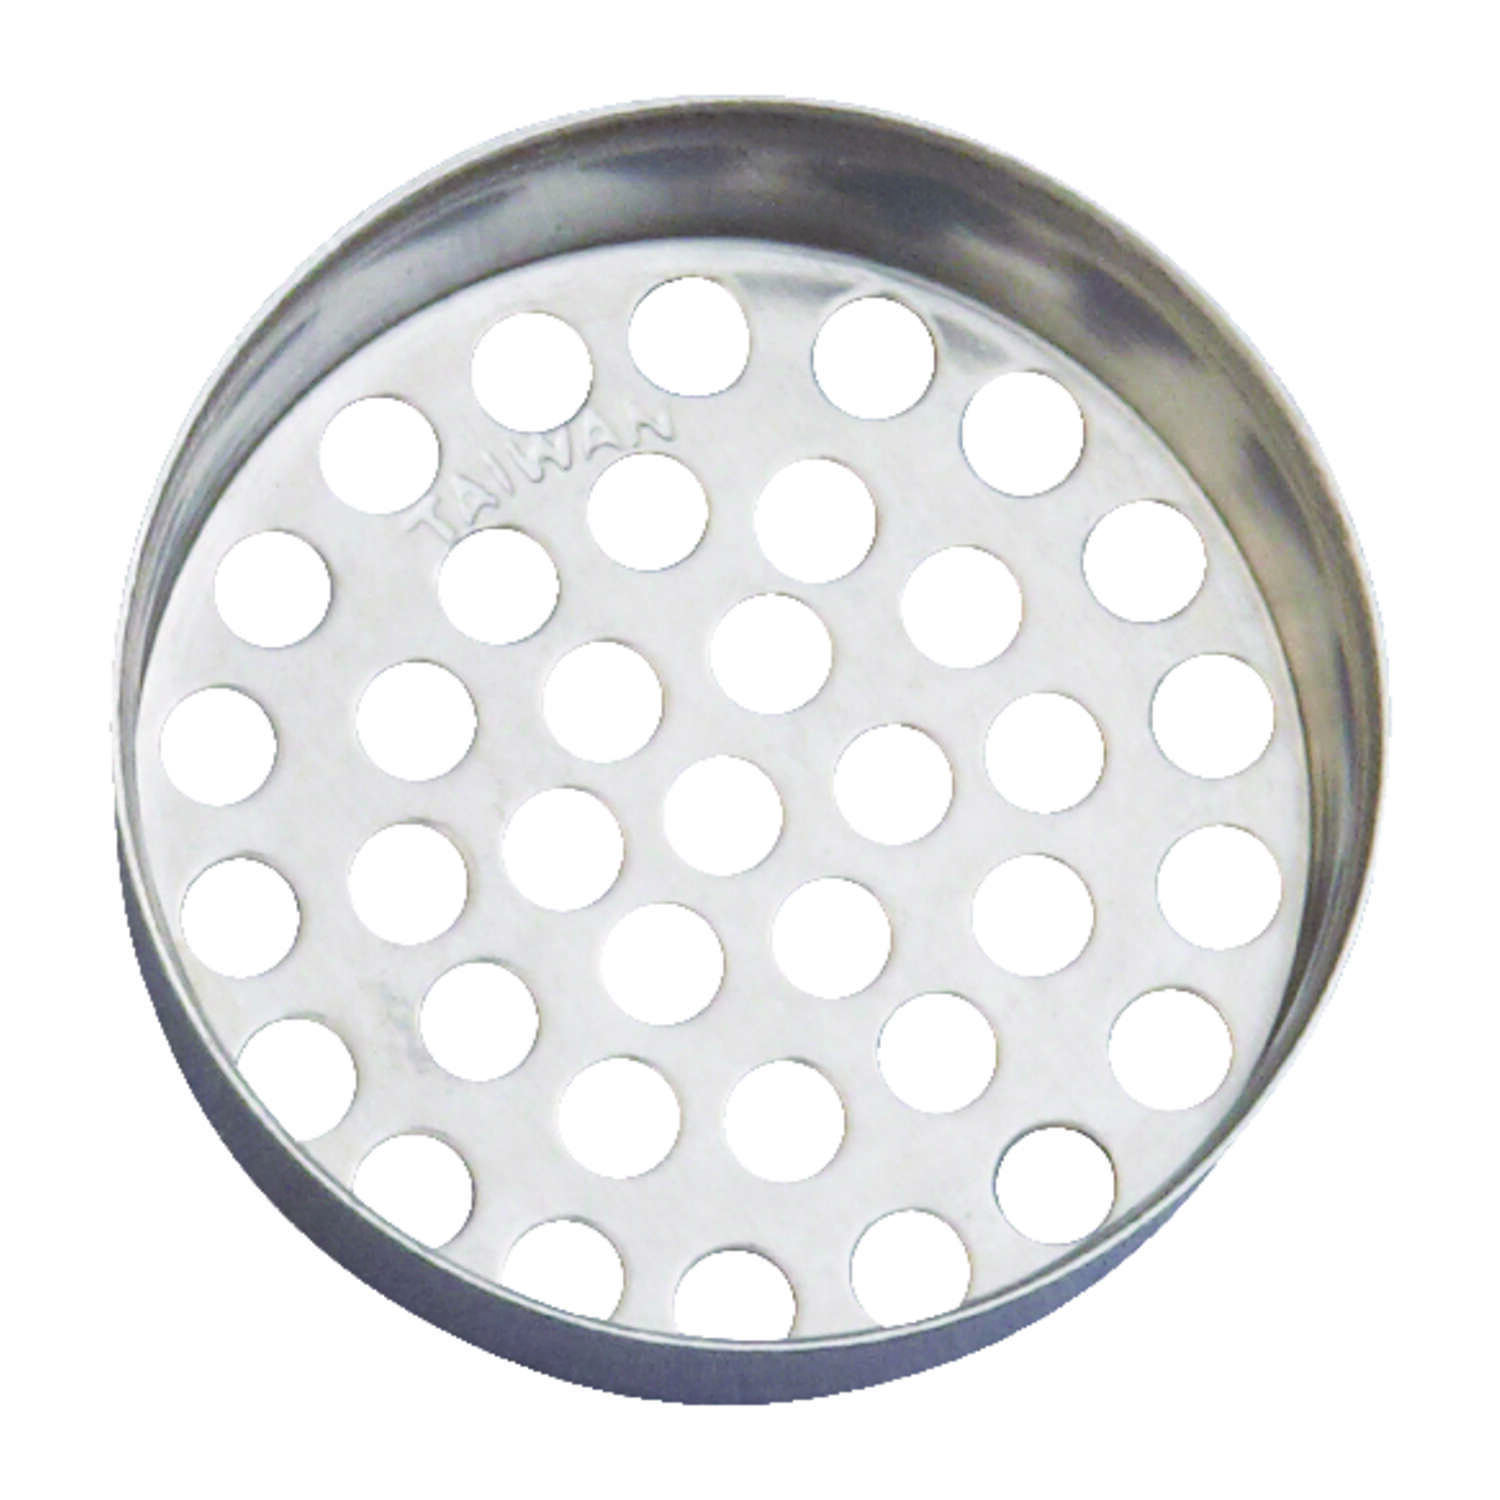 Ace  1-3/8 in. Dia. Replacement Strainer Basket  Stainless Steel